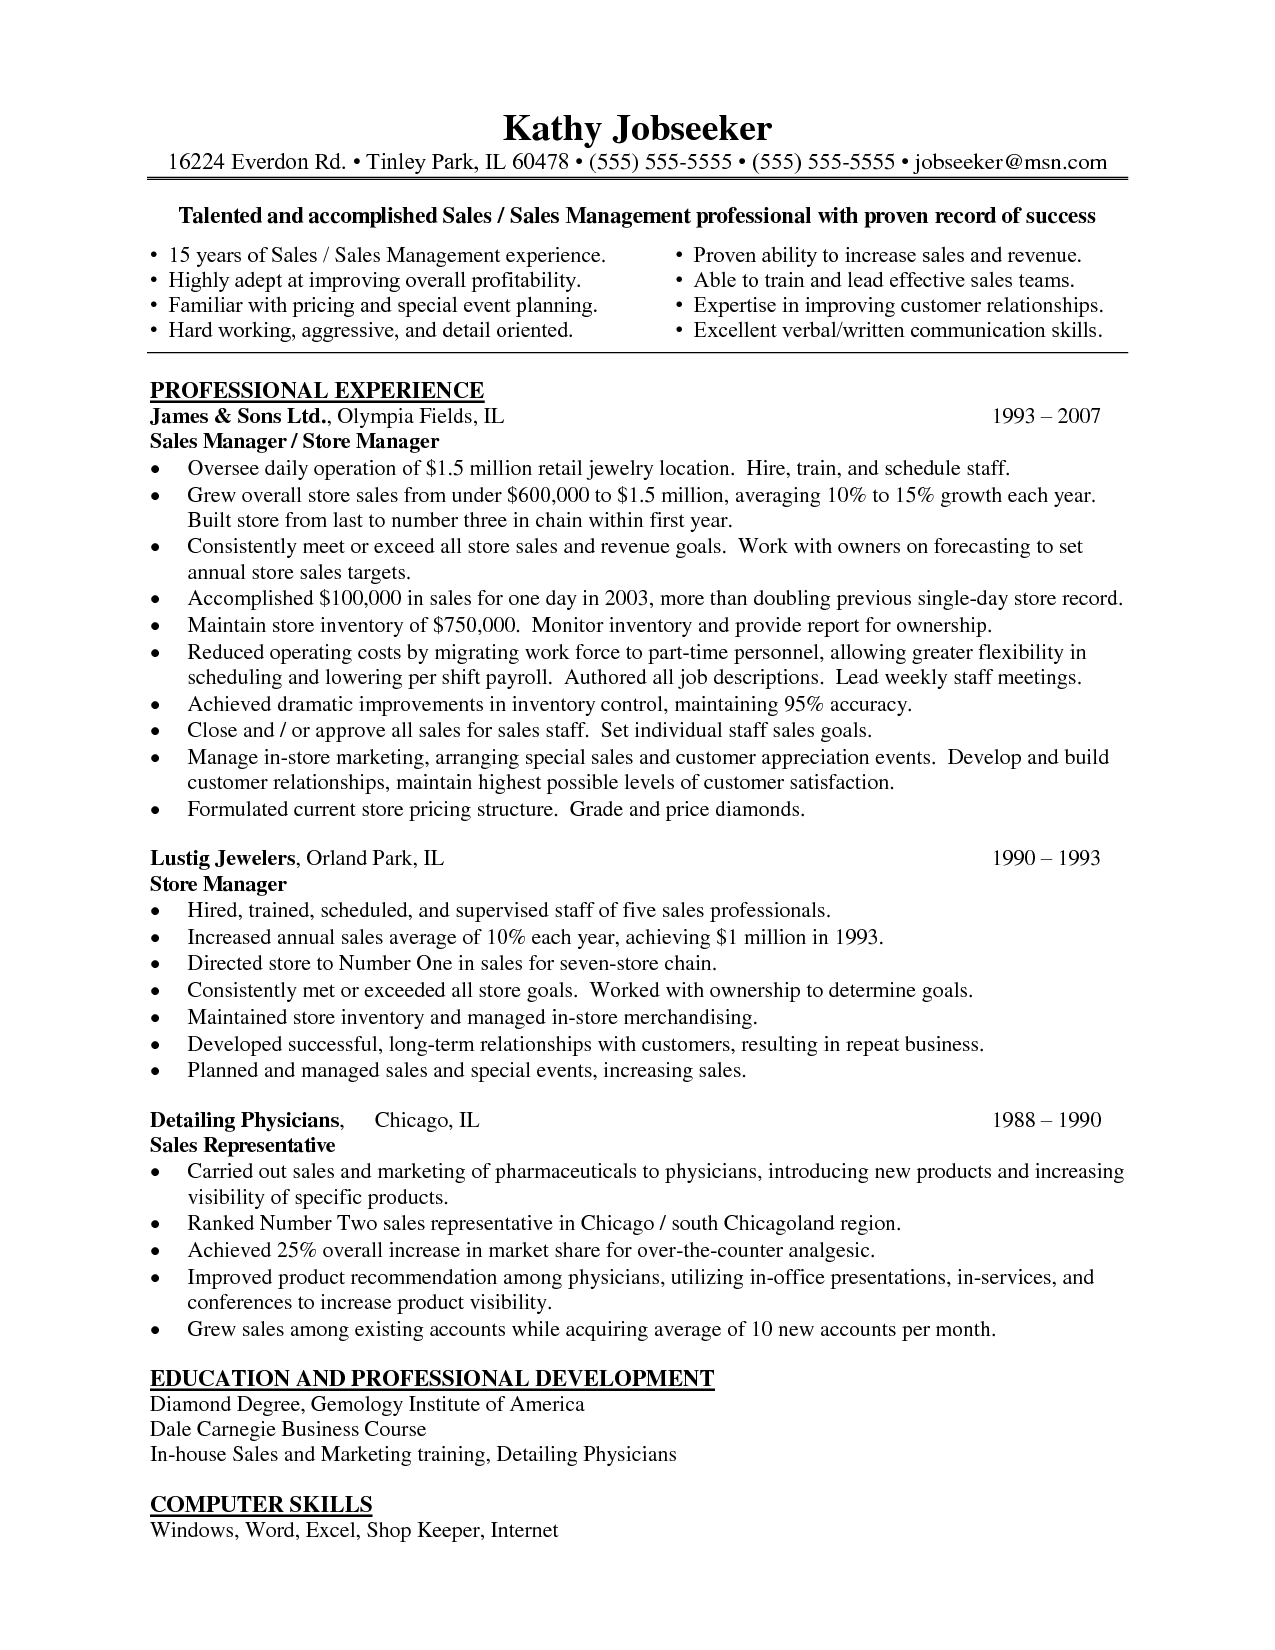 jewelry manager resume and cover letters examples - Dolap.magnetband.co